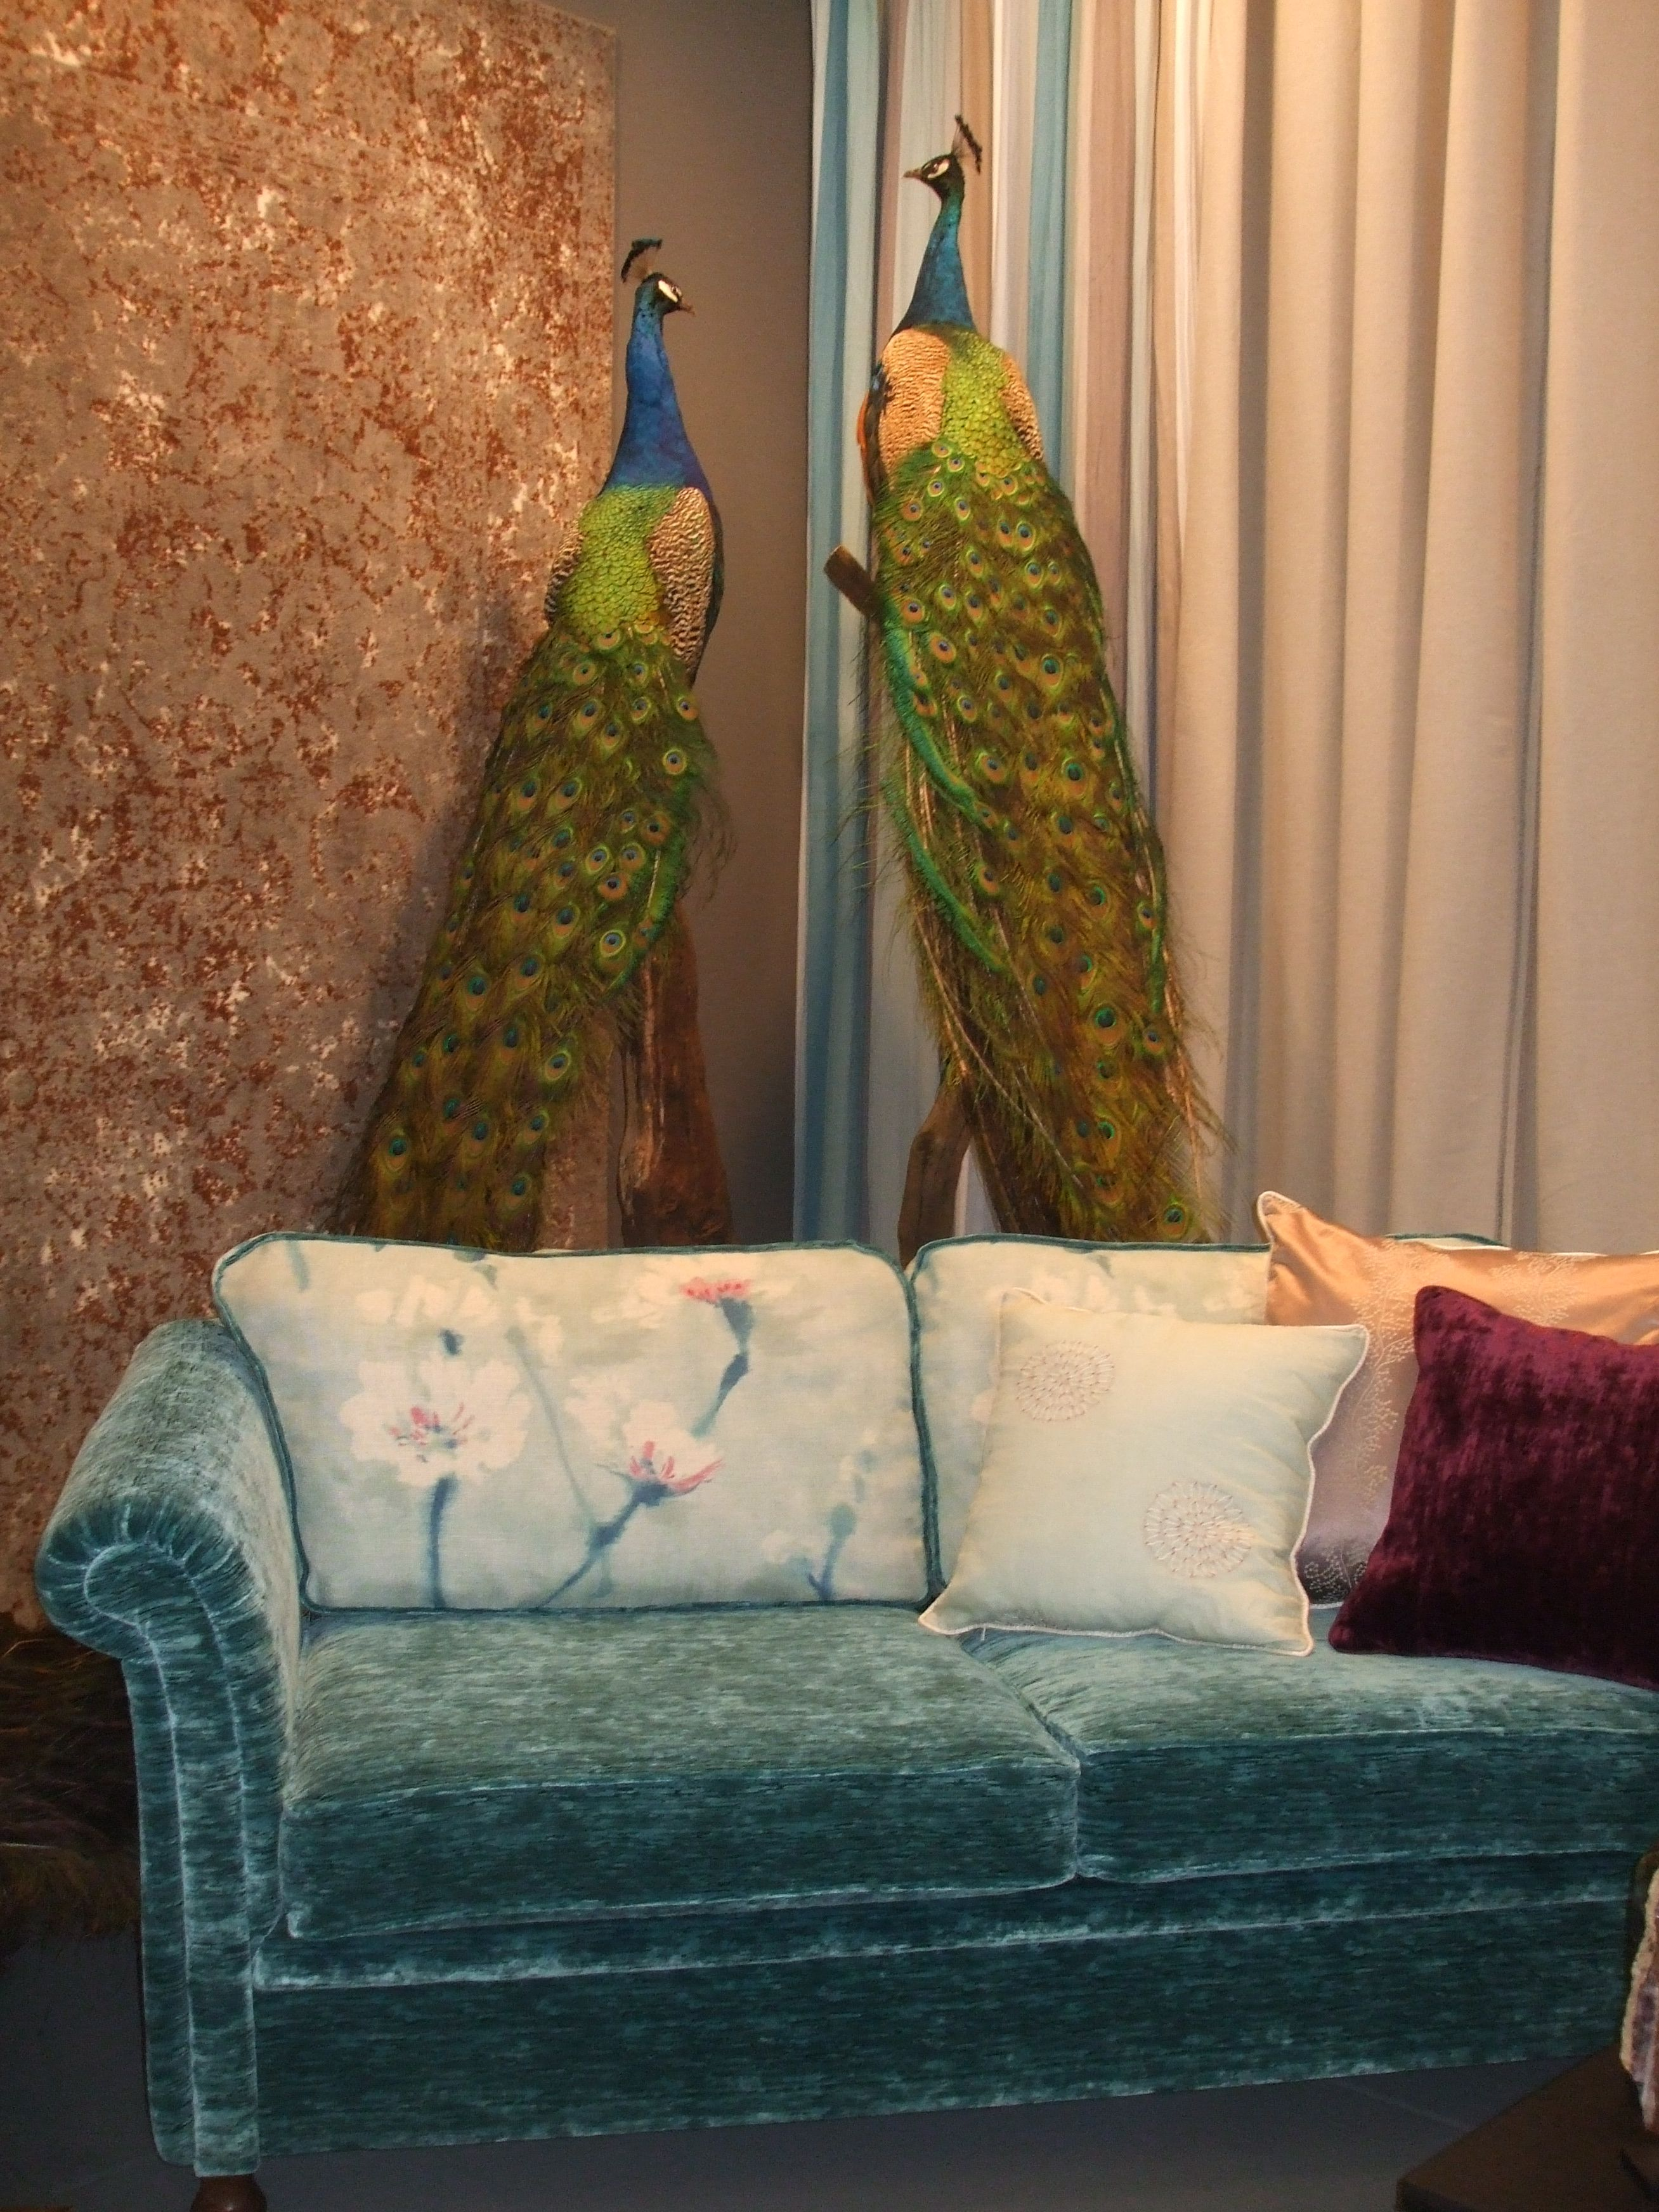 interior with turkoois seat and peacocks